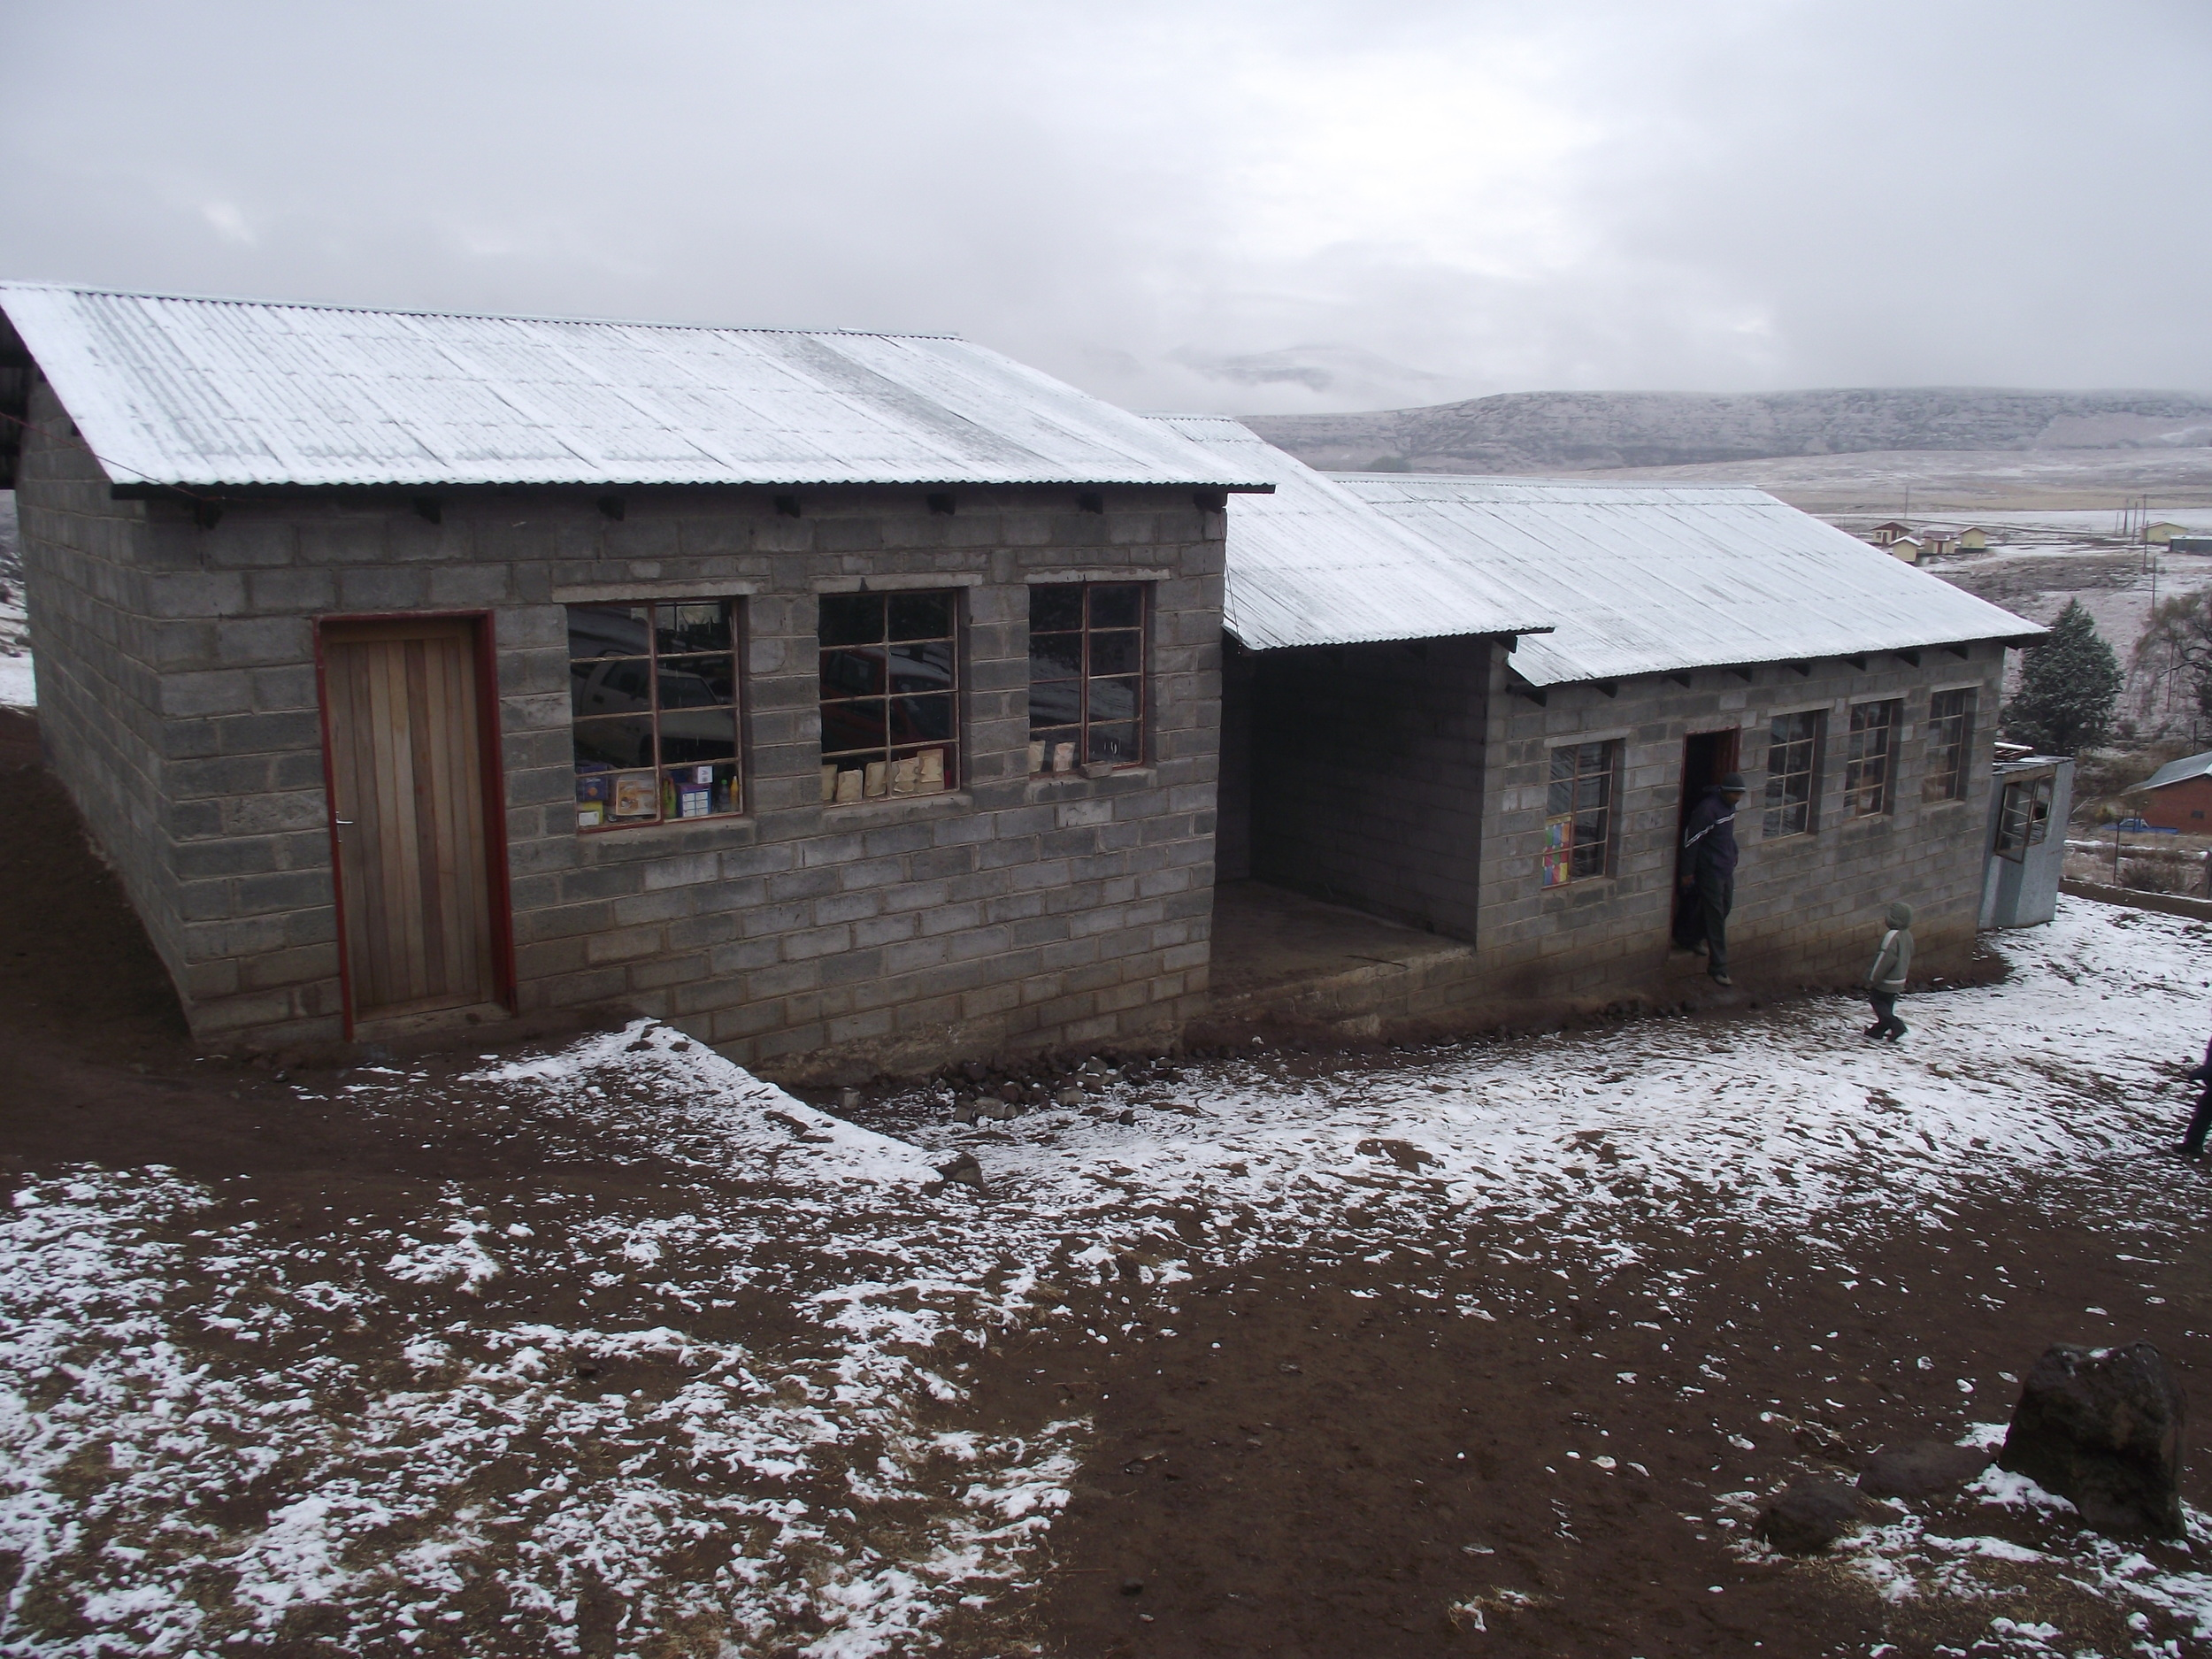 New classrooms in the snow!